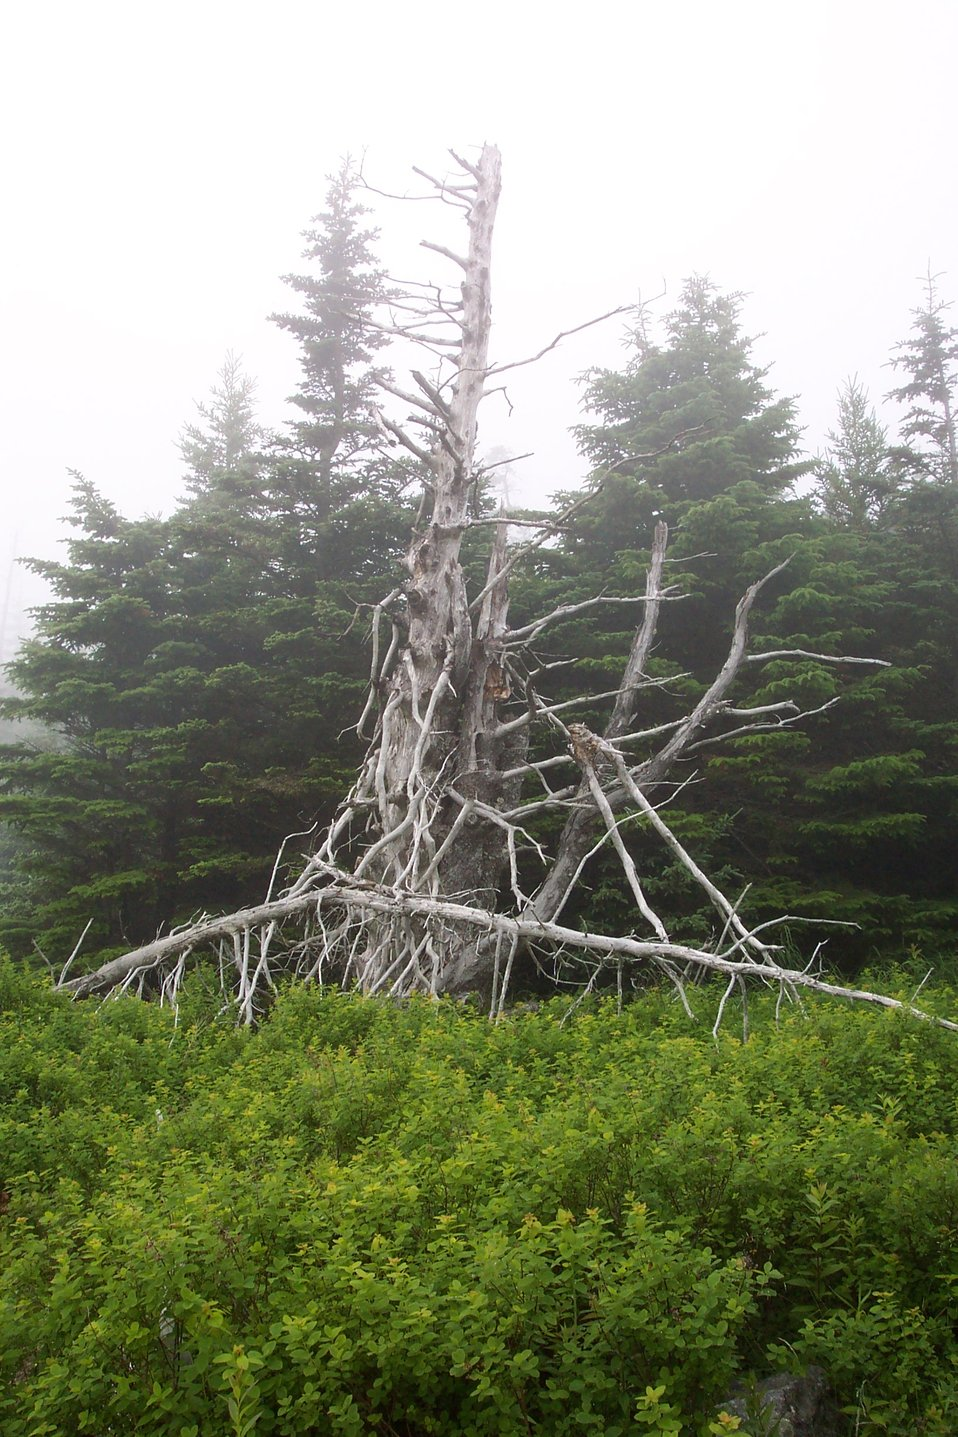 A good tree for a Harry Potter story at West Quoddy Head.